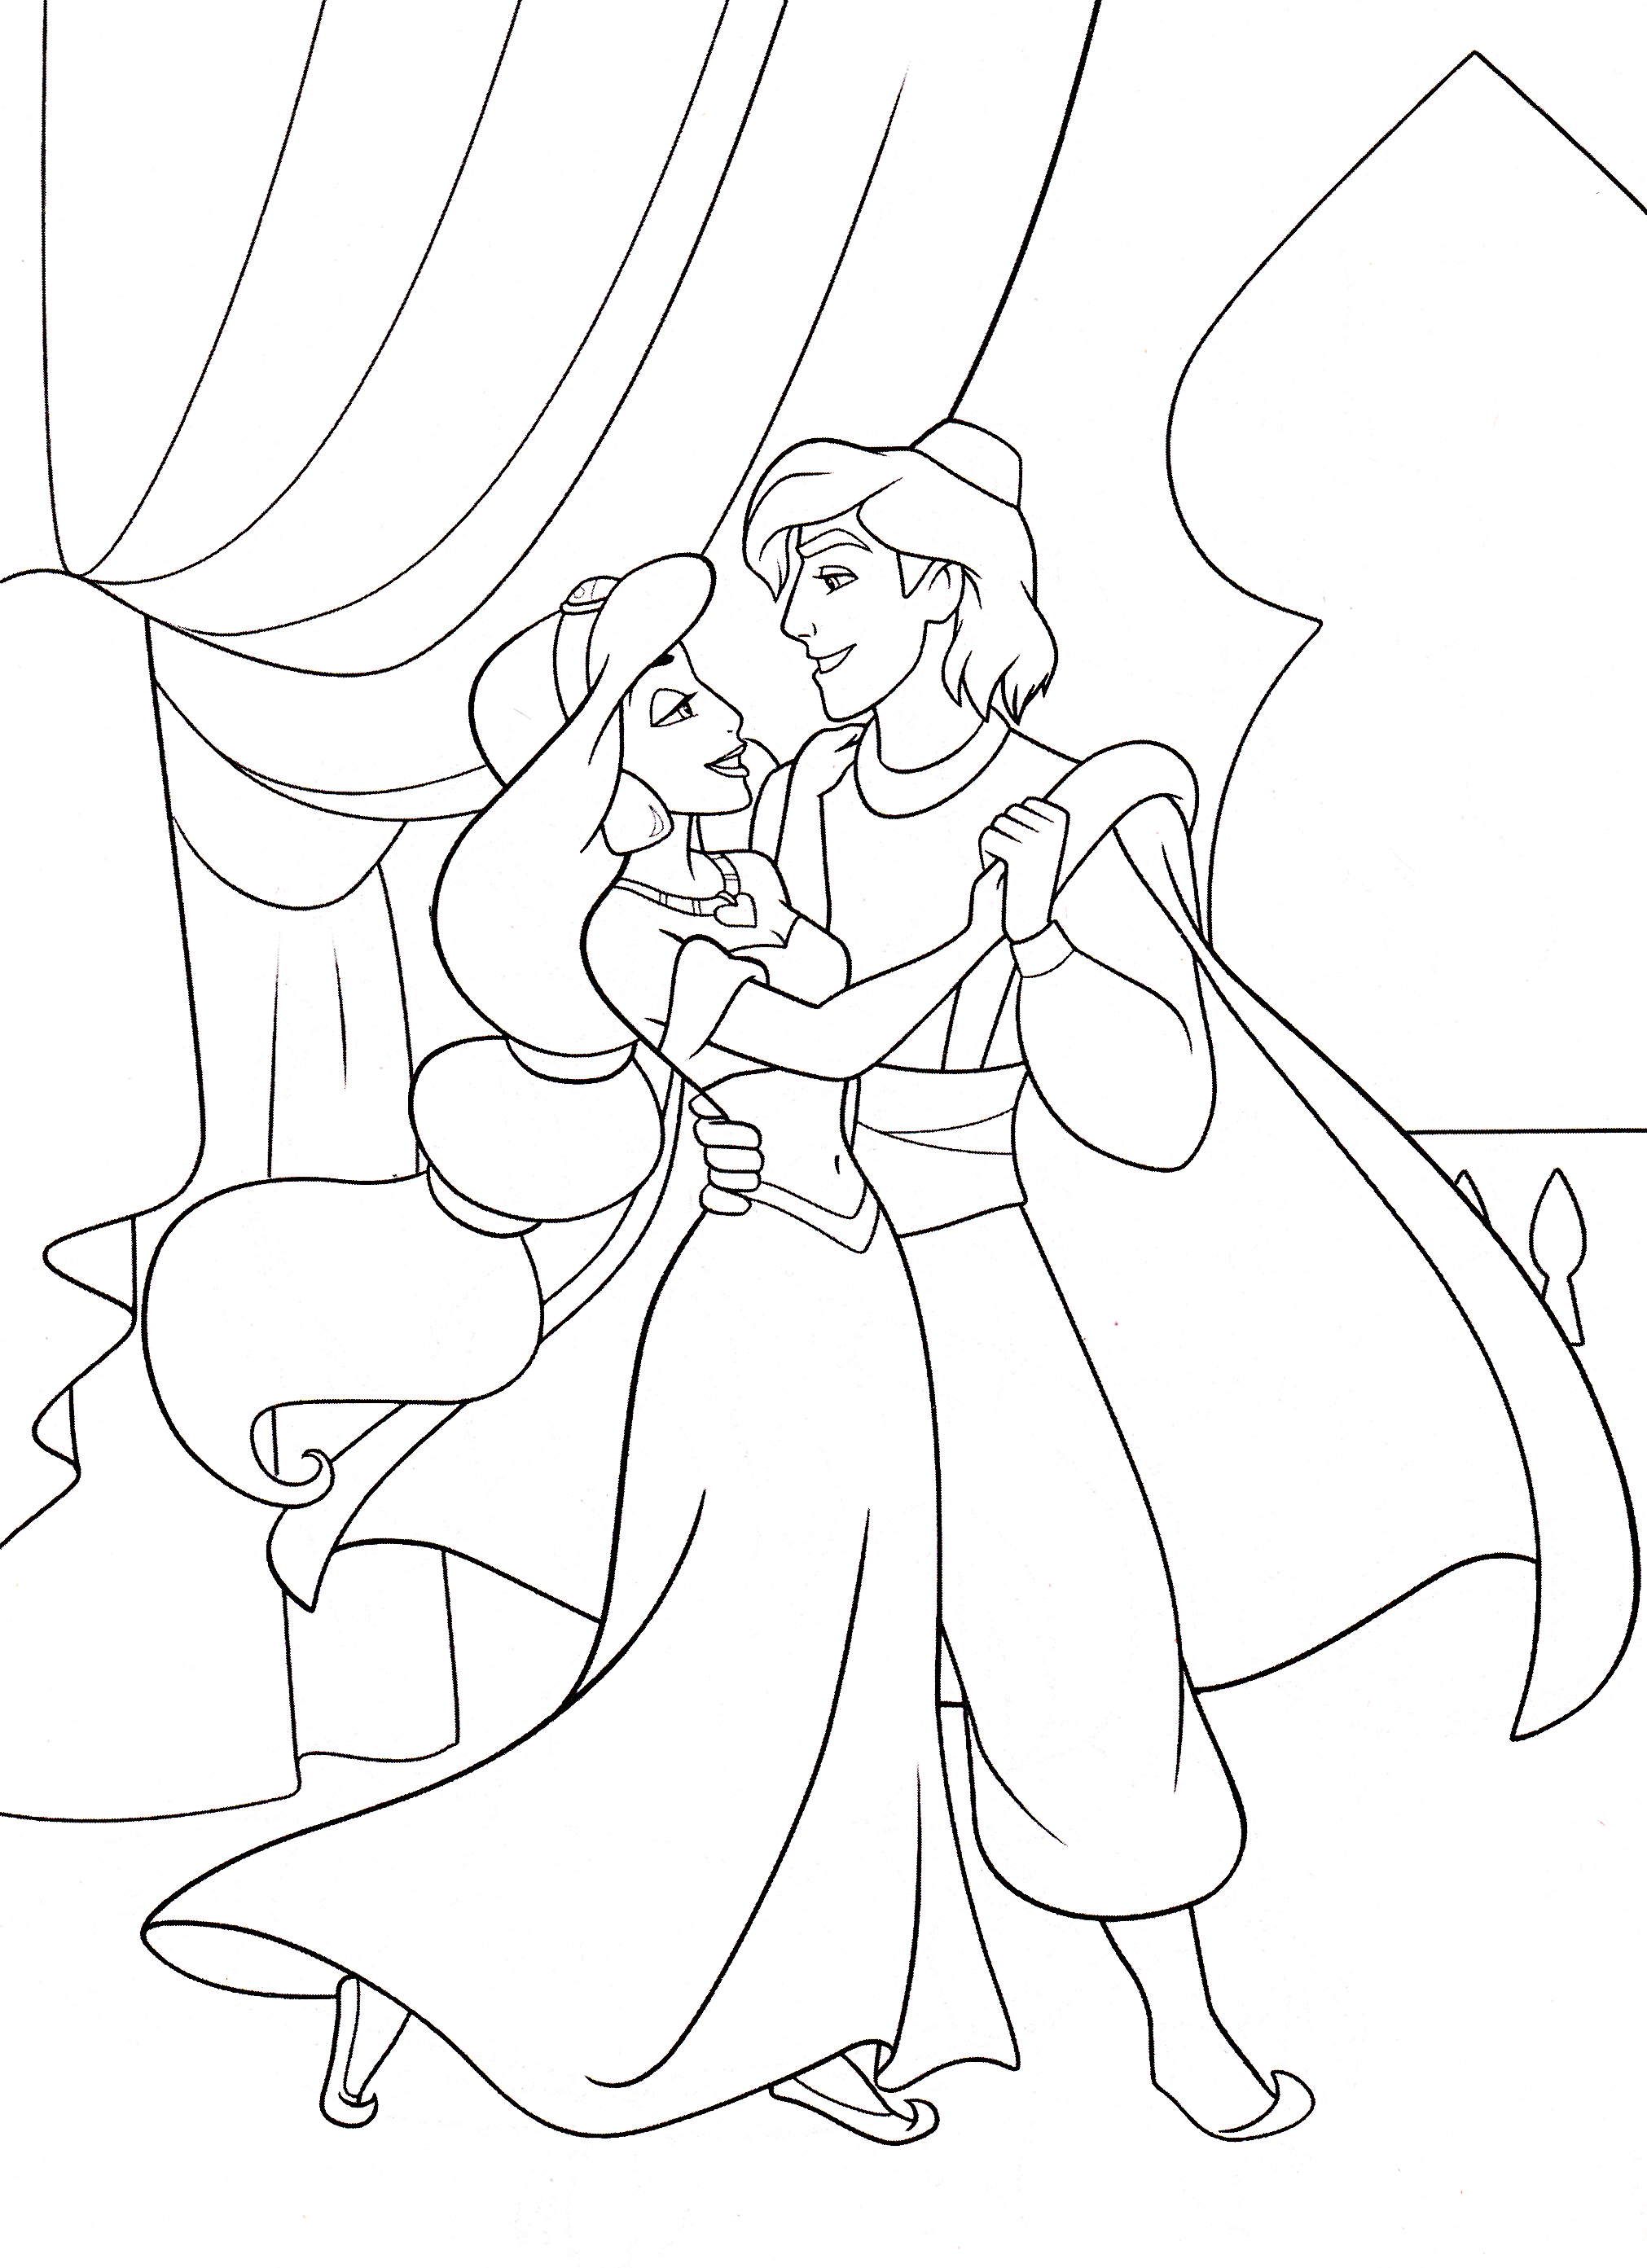 Walt disney coloring pages princess jasmine prince for Jasmine the princess coloring pages